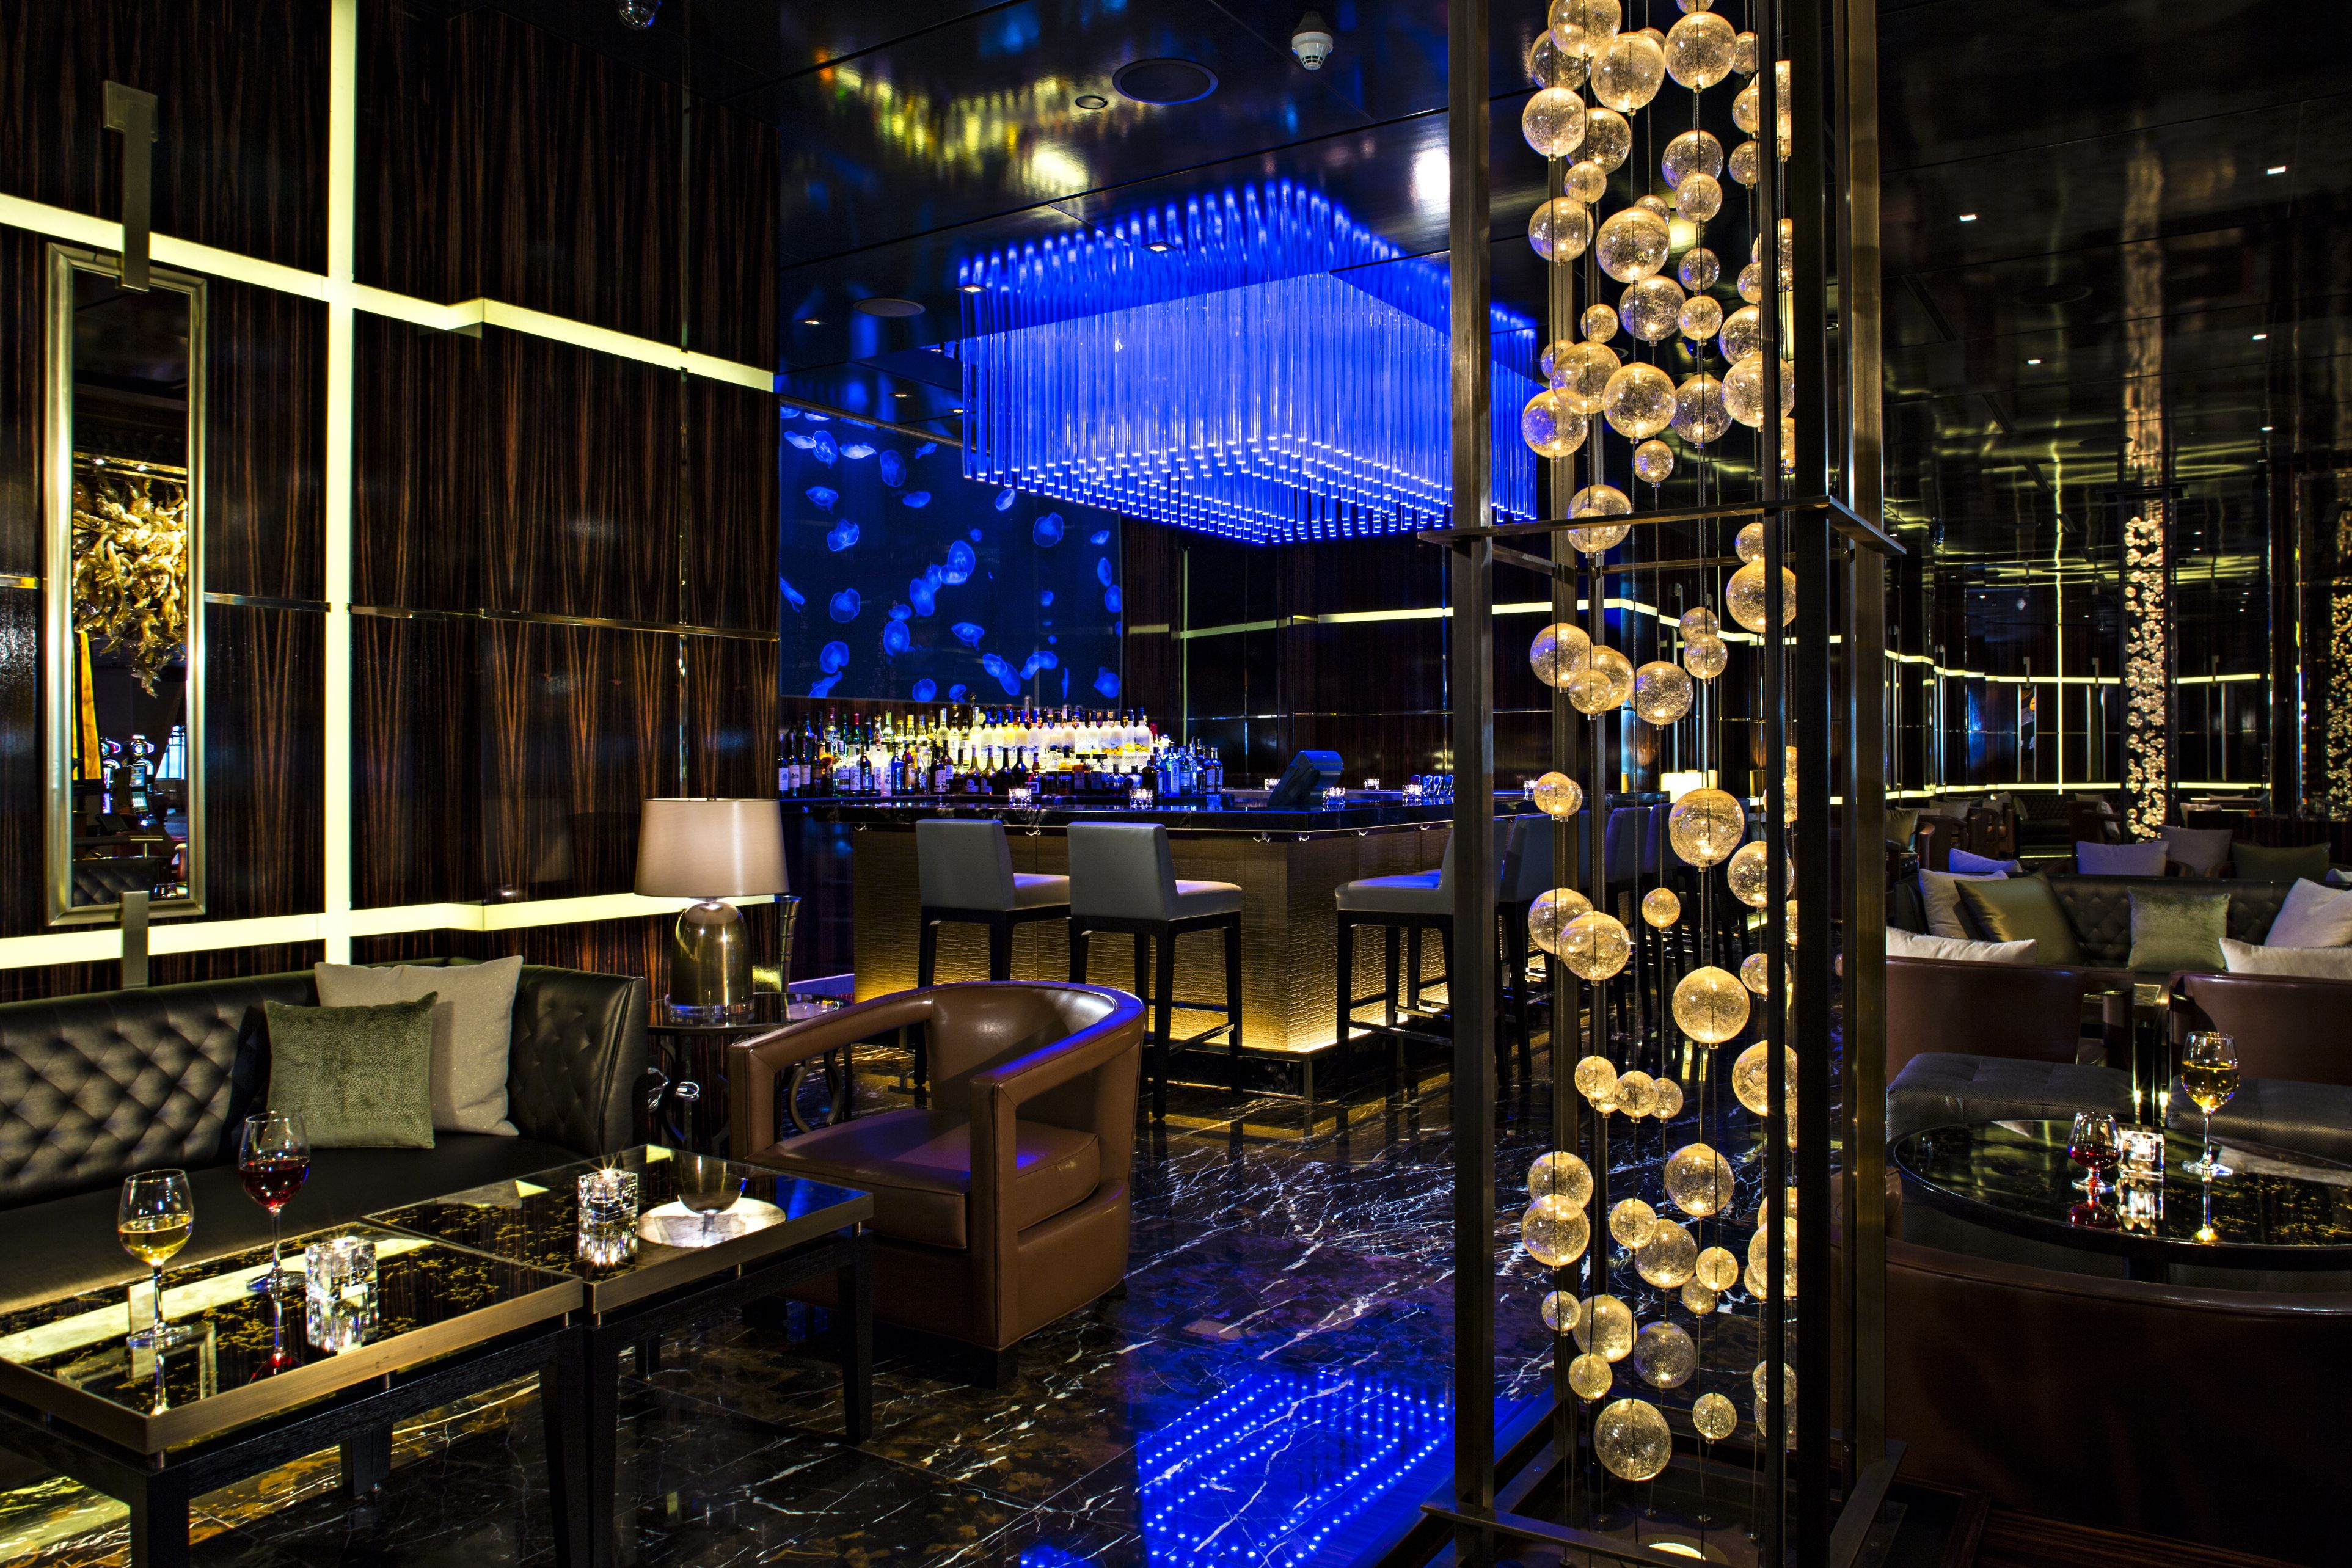 Enjoy A Private Event At The Cool Moon Club At Atlantis